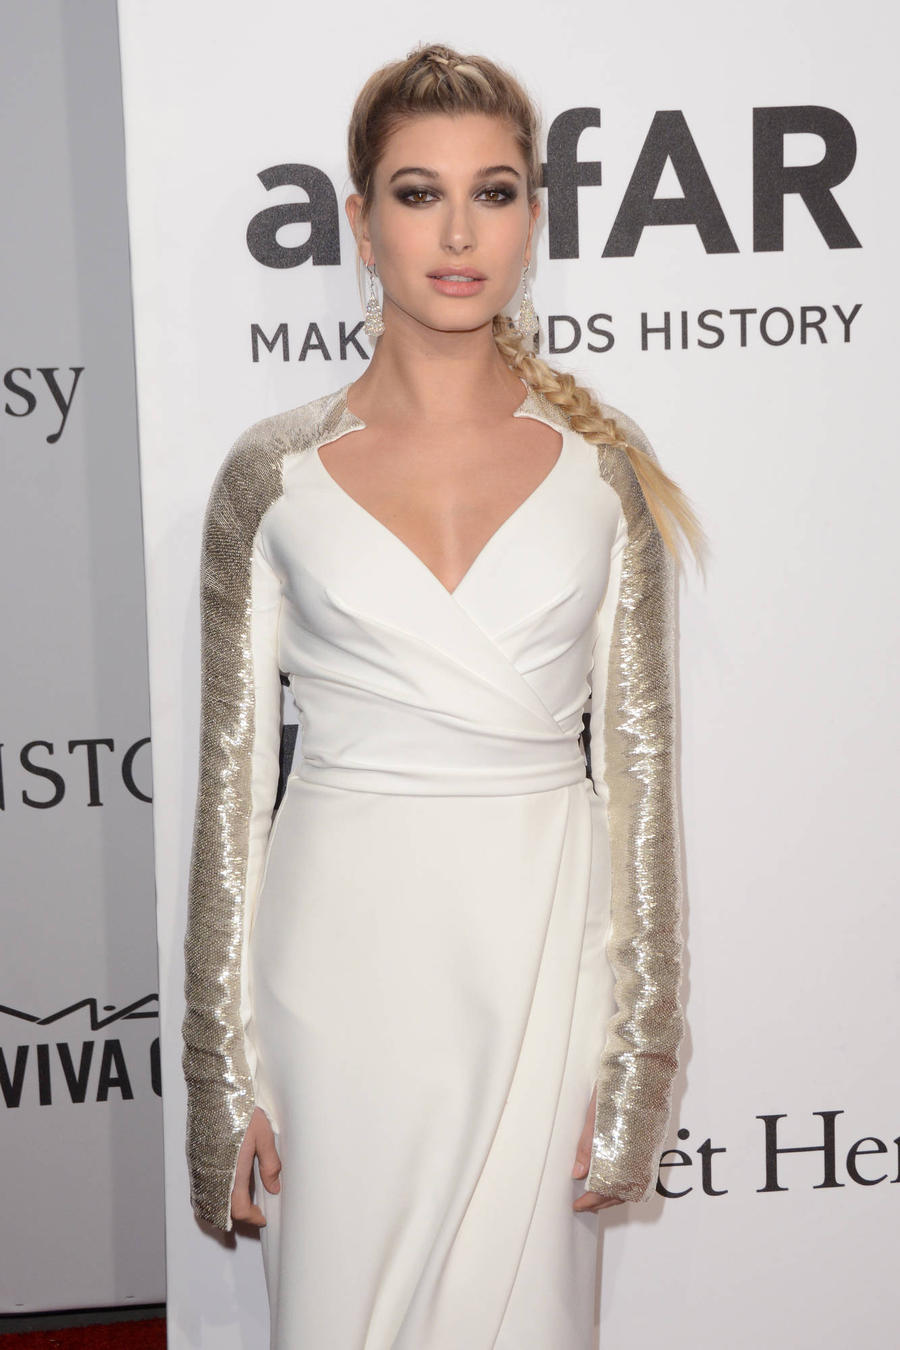 Hailey Baldwin: 'There Is No Justin Bieber Feud With Selena Gomez'